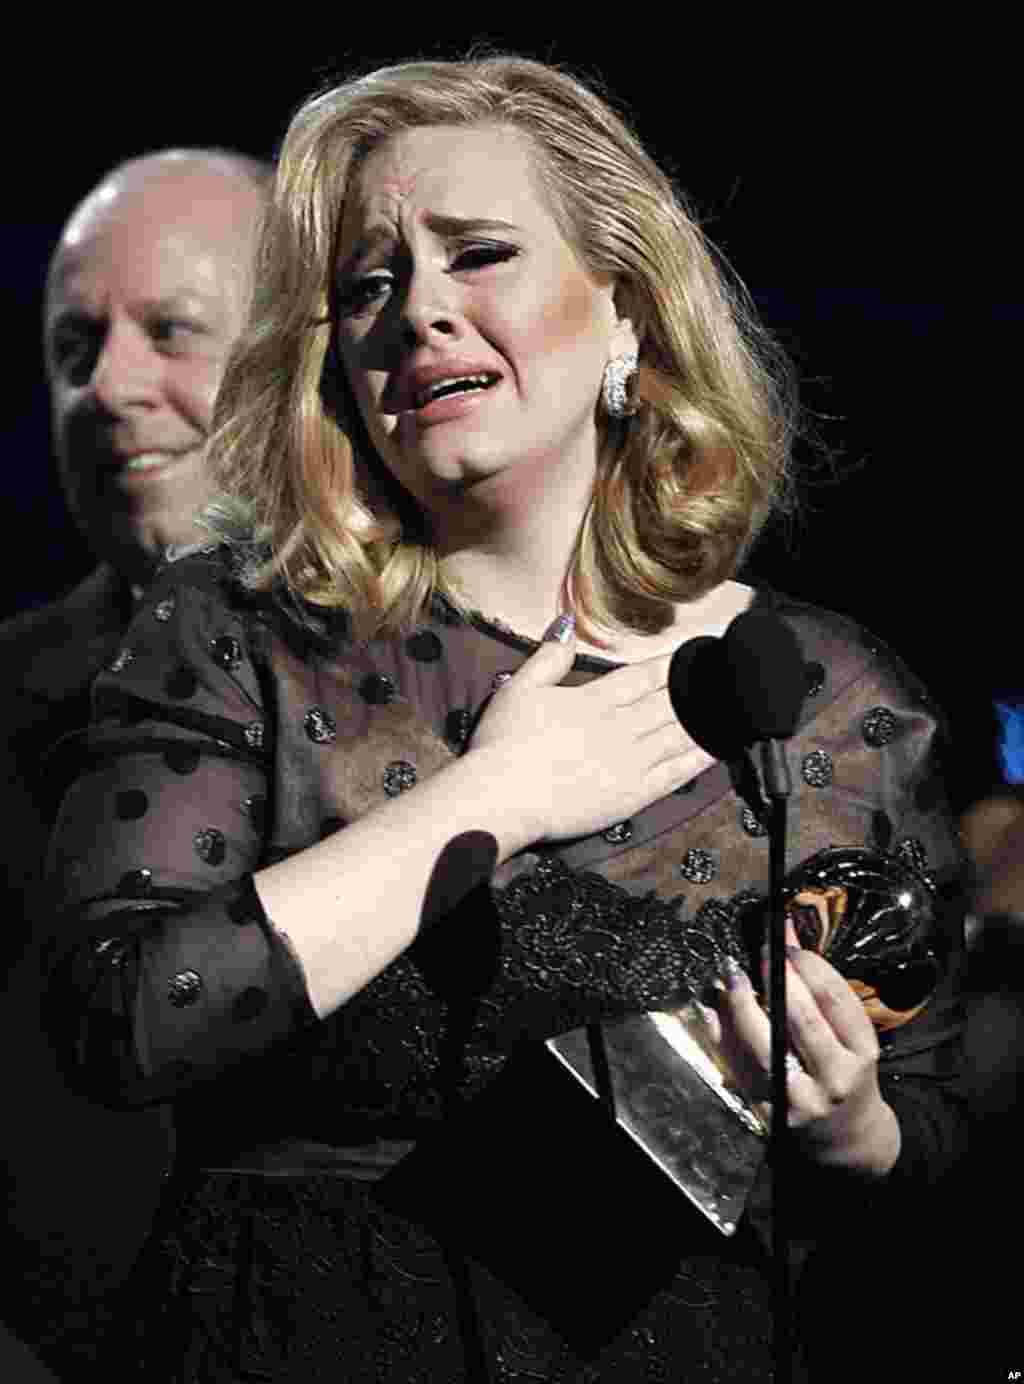 """Adele accepts the award for record of the year for """"Rolling in the Deep"""" during the 54th annual Grammy Awards in Los Angeles, February 12, 2012. (AP Photo/Matt Sayles)"""